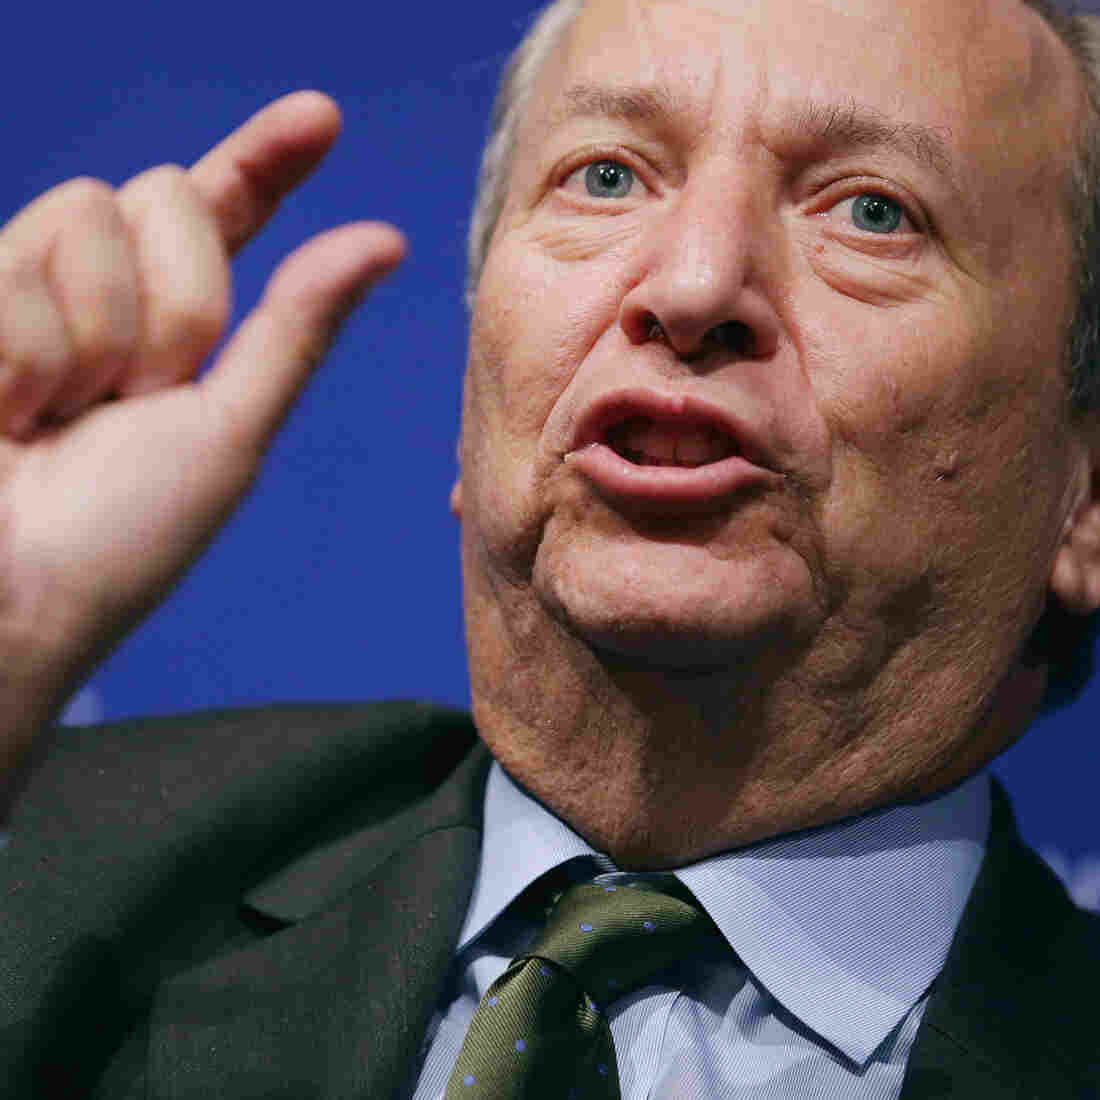 Clinton-era Treasury secretary and former Obama economic adviser Lawrence Summers last week in Washington, D.C.